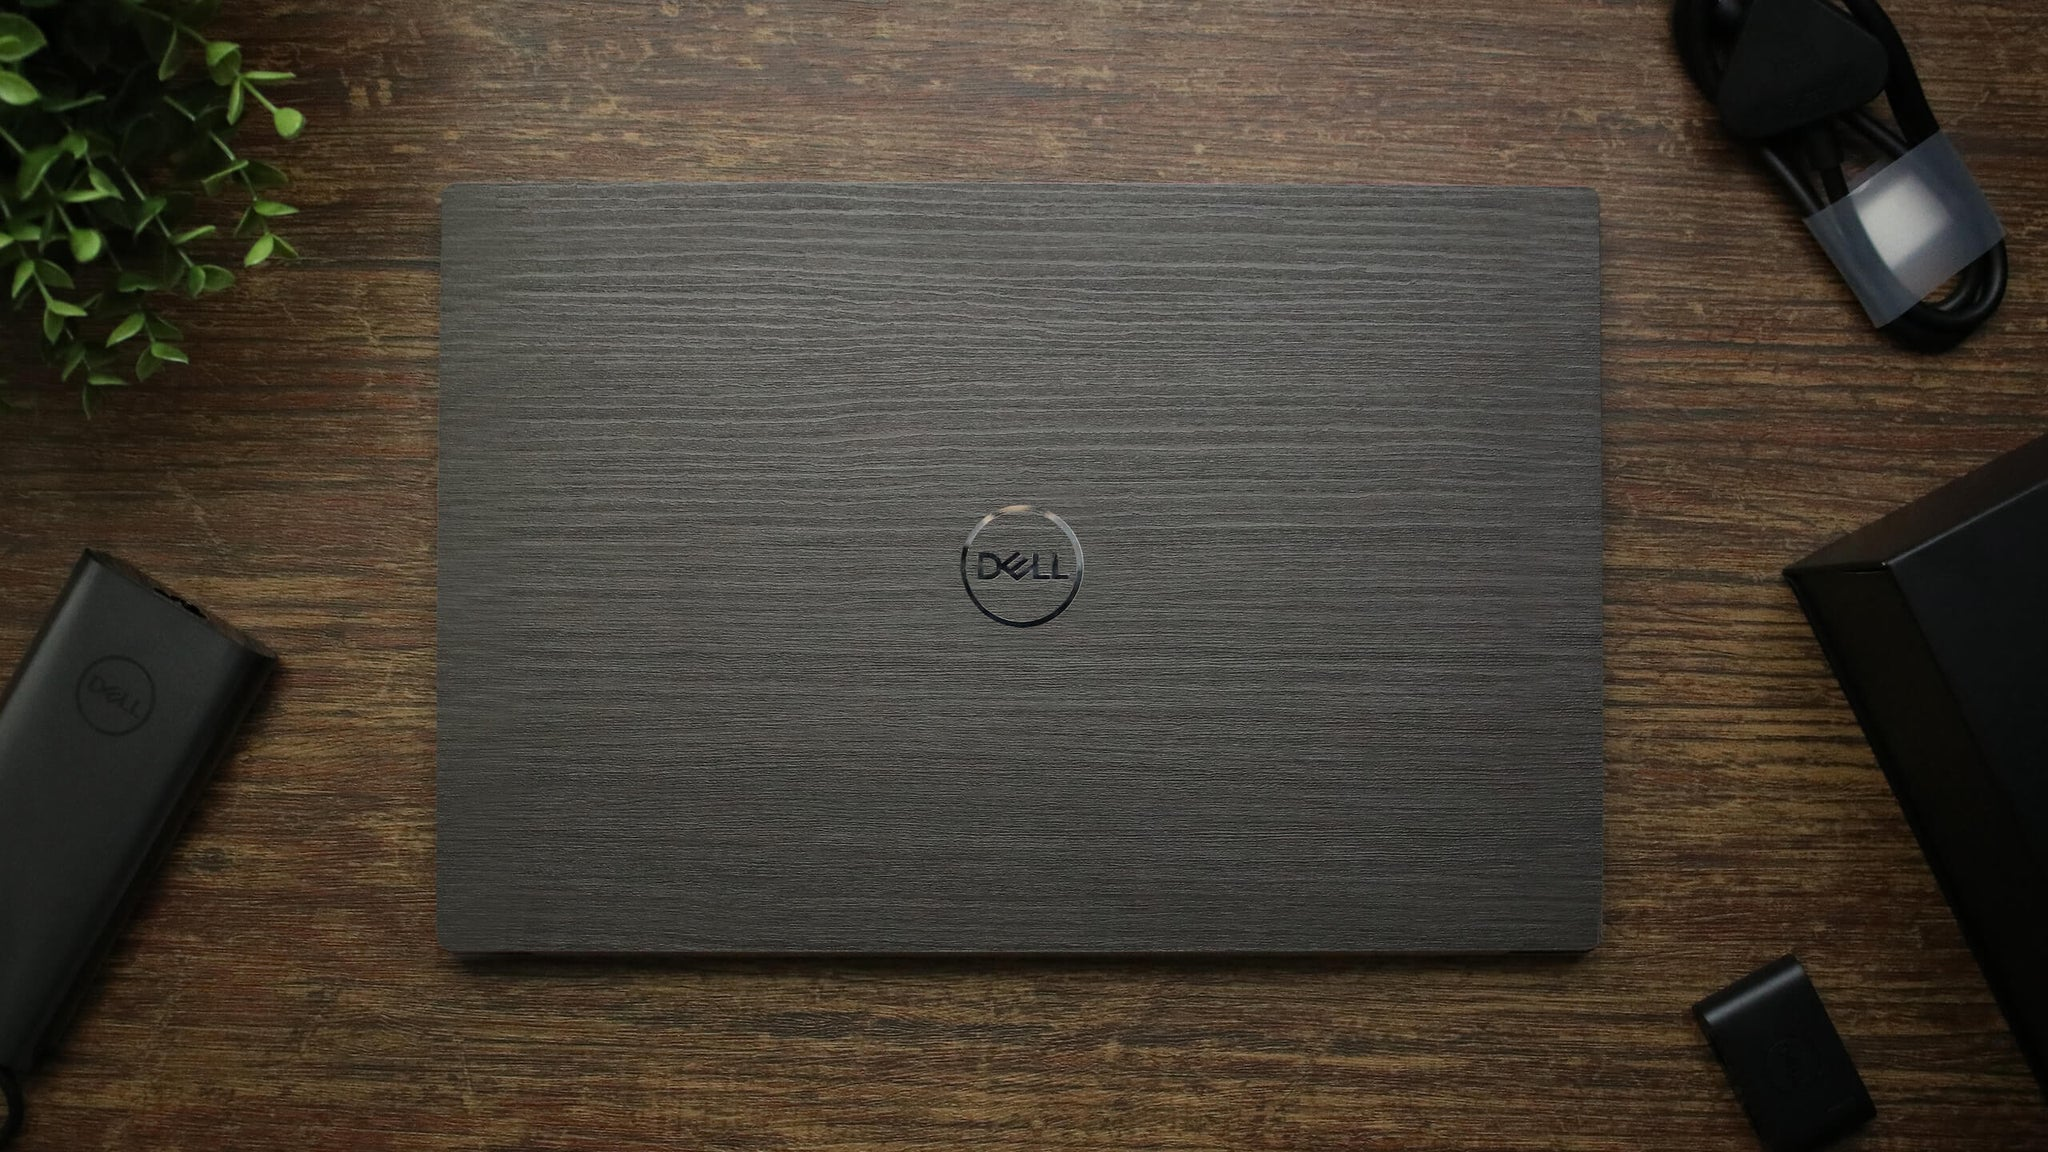 Dell XPS 15 (9500) Silverblack Wood Skins